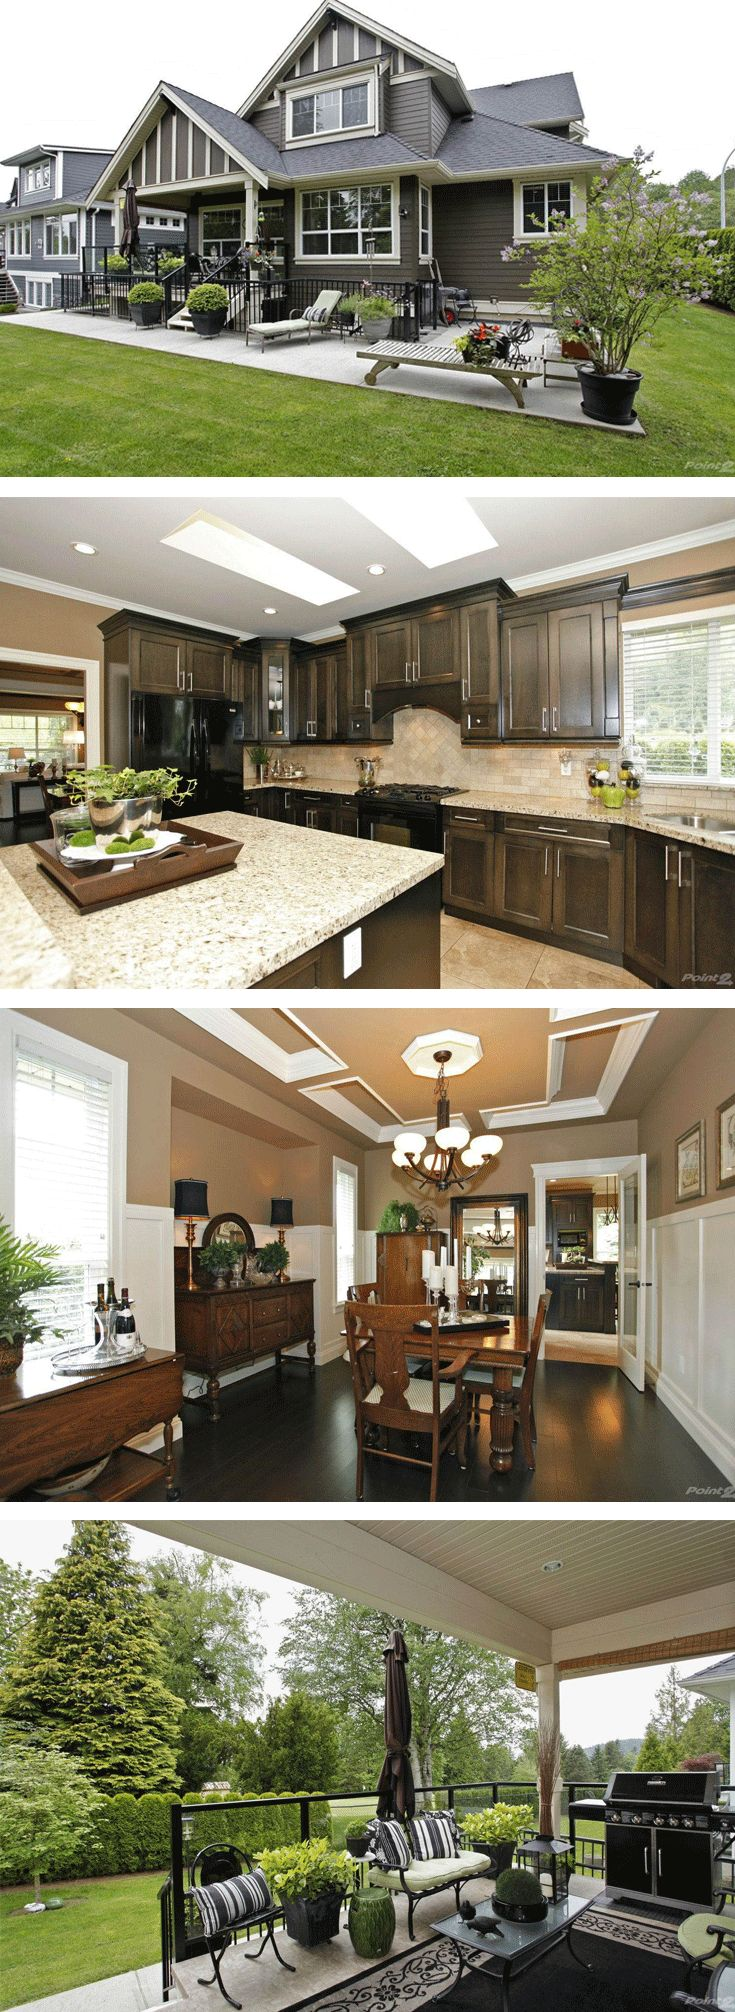 This delightful home has an exquisite character. See for yourself and get inspired: http://www.point2homes.com/CA/Home-For-Sale/BC/Abbotsford/Clayburn-Hills/14-3800-Golf-Course-Drive/7663535.html